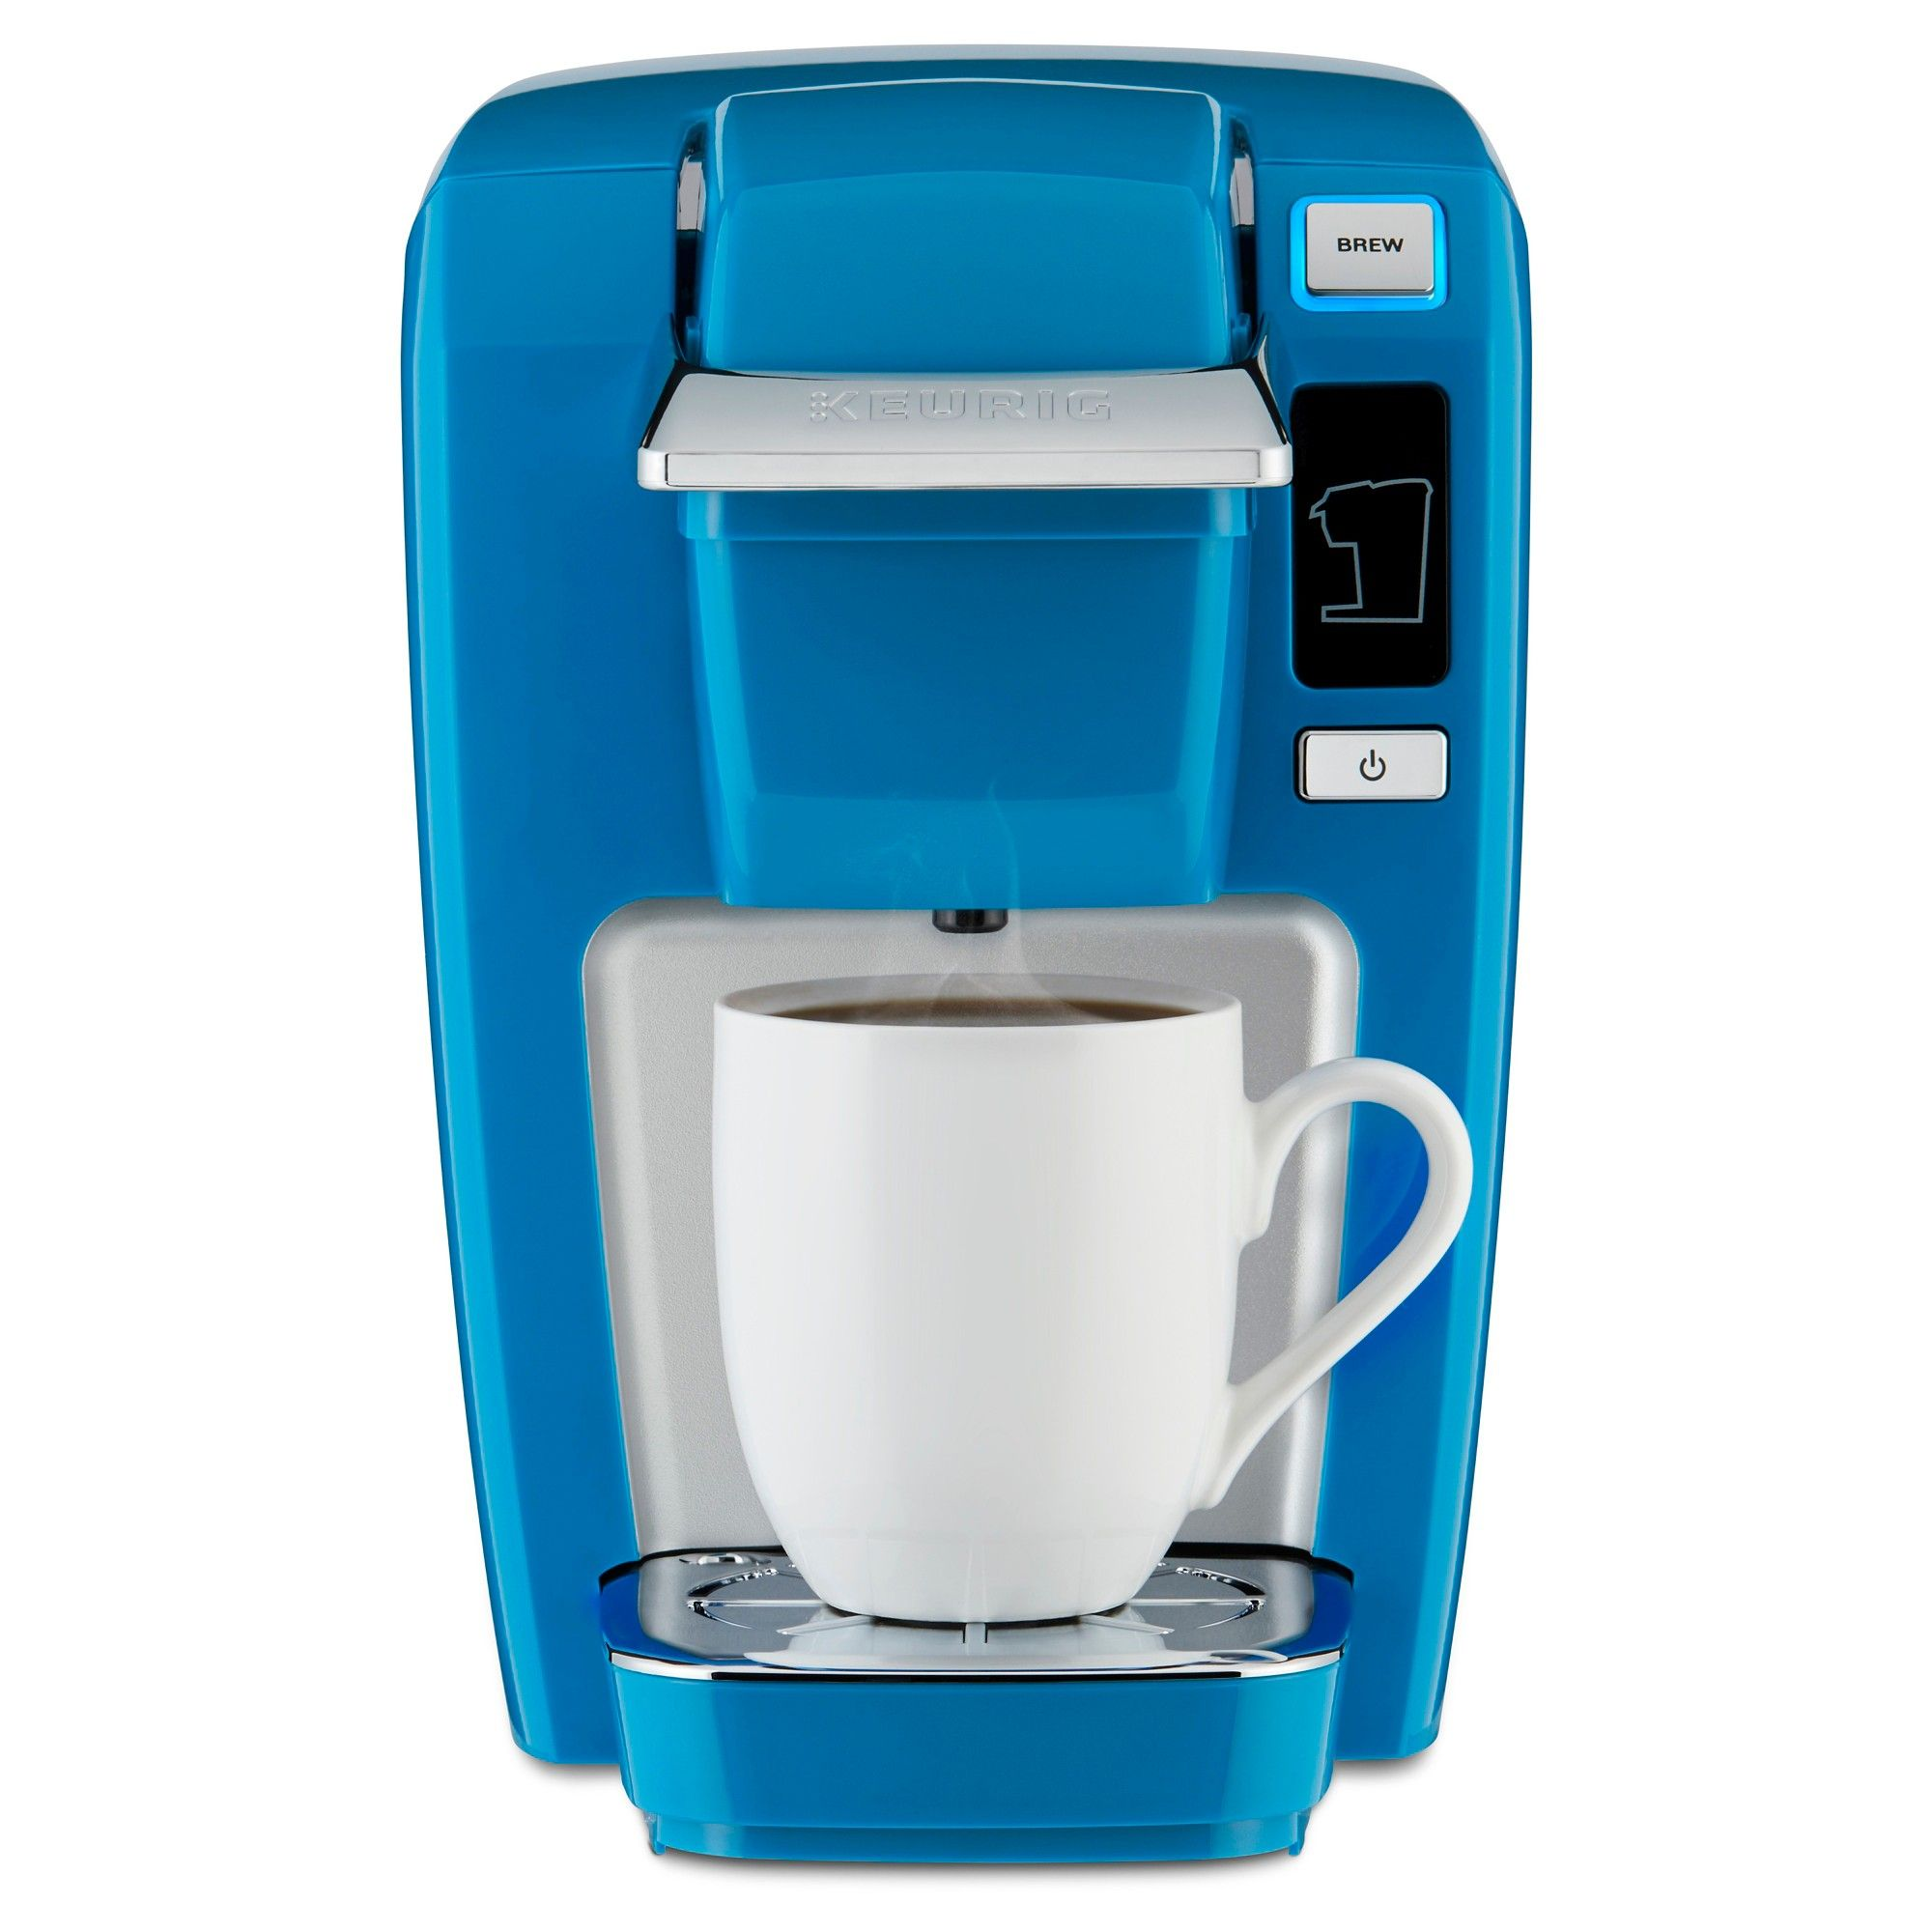 Keurig K15 Coffee Maker True Blue Keurig coffee makers